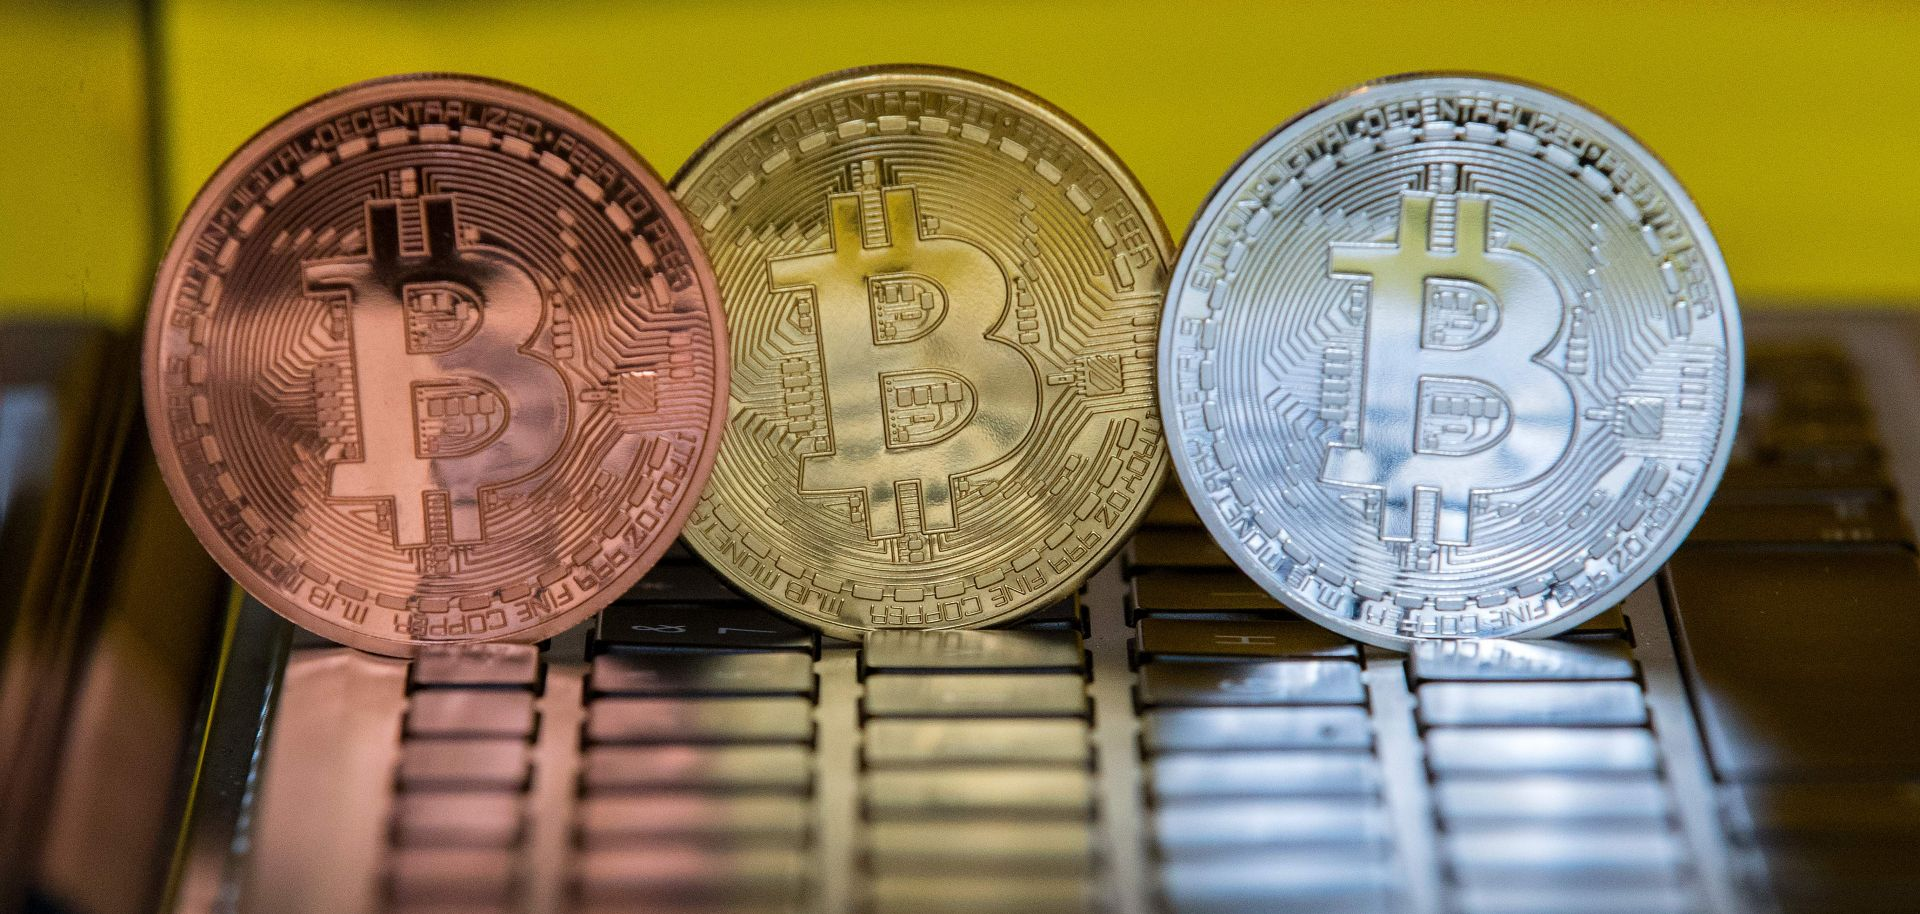 Physical representations of Bitcoin tokens, a digital currency, stand on a computer at a shop in Tel Aviv, Israel.